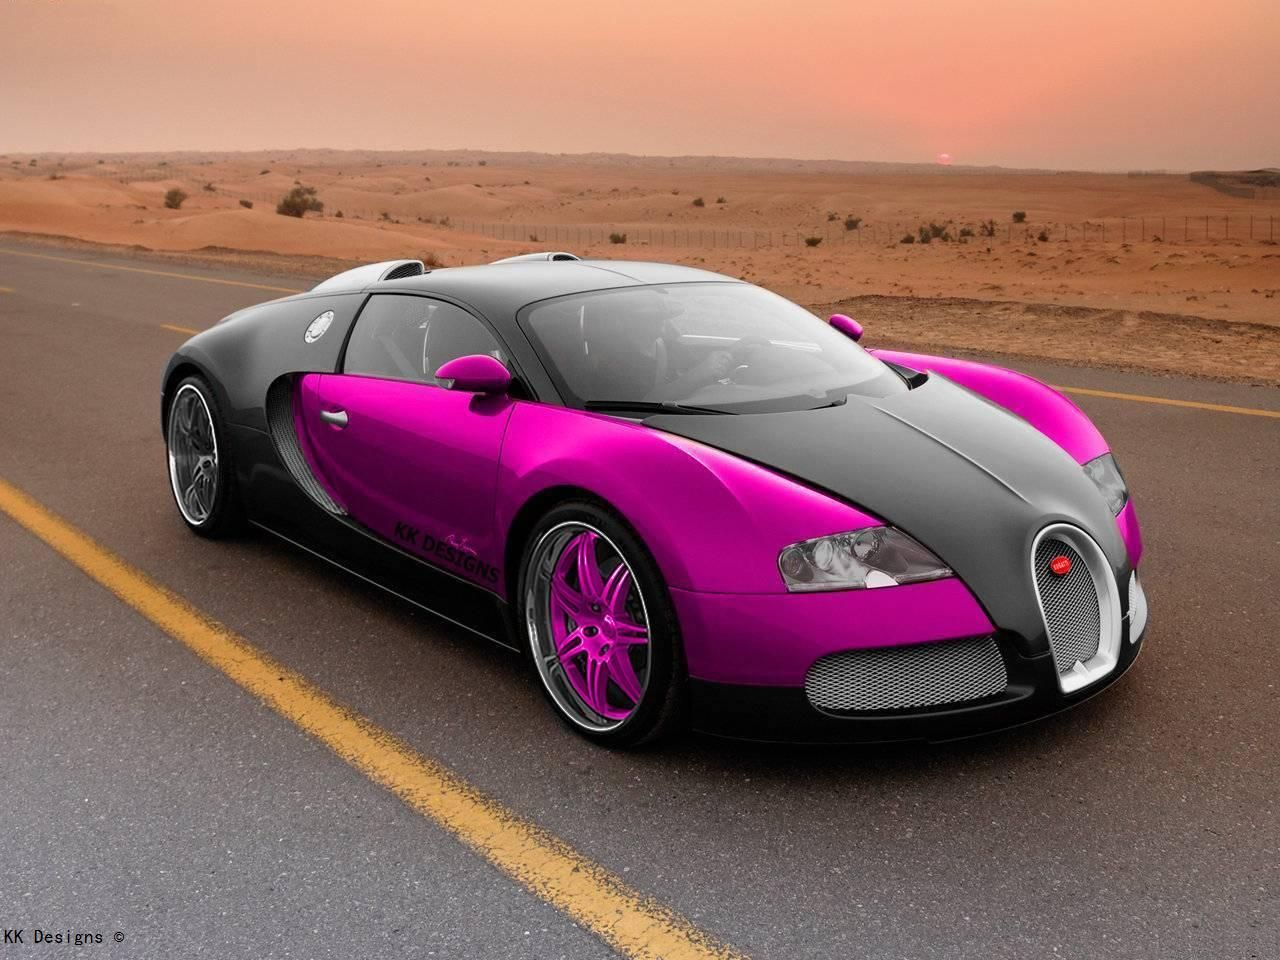 1000 images about new bugatti on pinterest exotic cars the spirit and cars bugatti veyron super sport - Bugatti Veyron Super Sport Top Gear Wallpaper